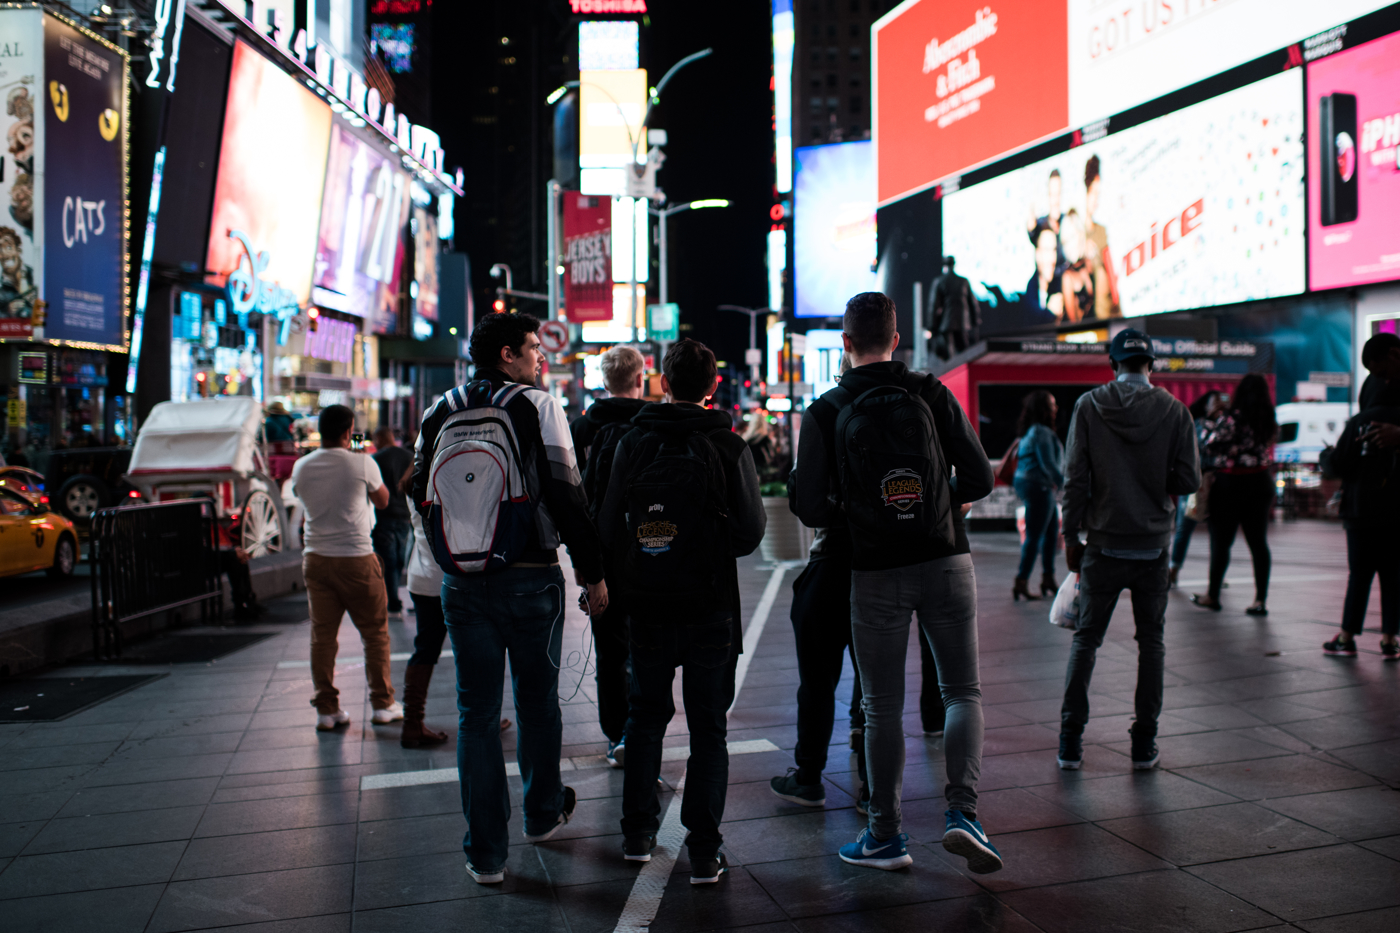 Members of H2k-Gaming walk through Times Square in New York, NY at 2AM, the day of their semifinal matchup with Samsung Galaxy for a chance to play in the League of Legends World Championship Finals.